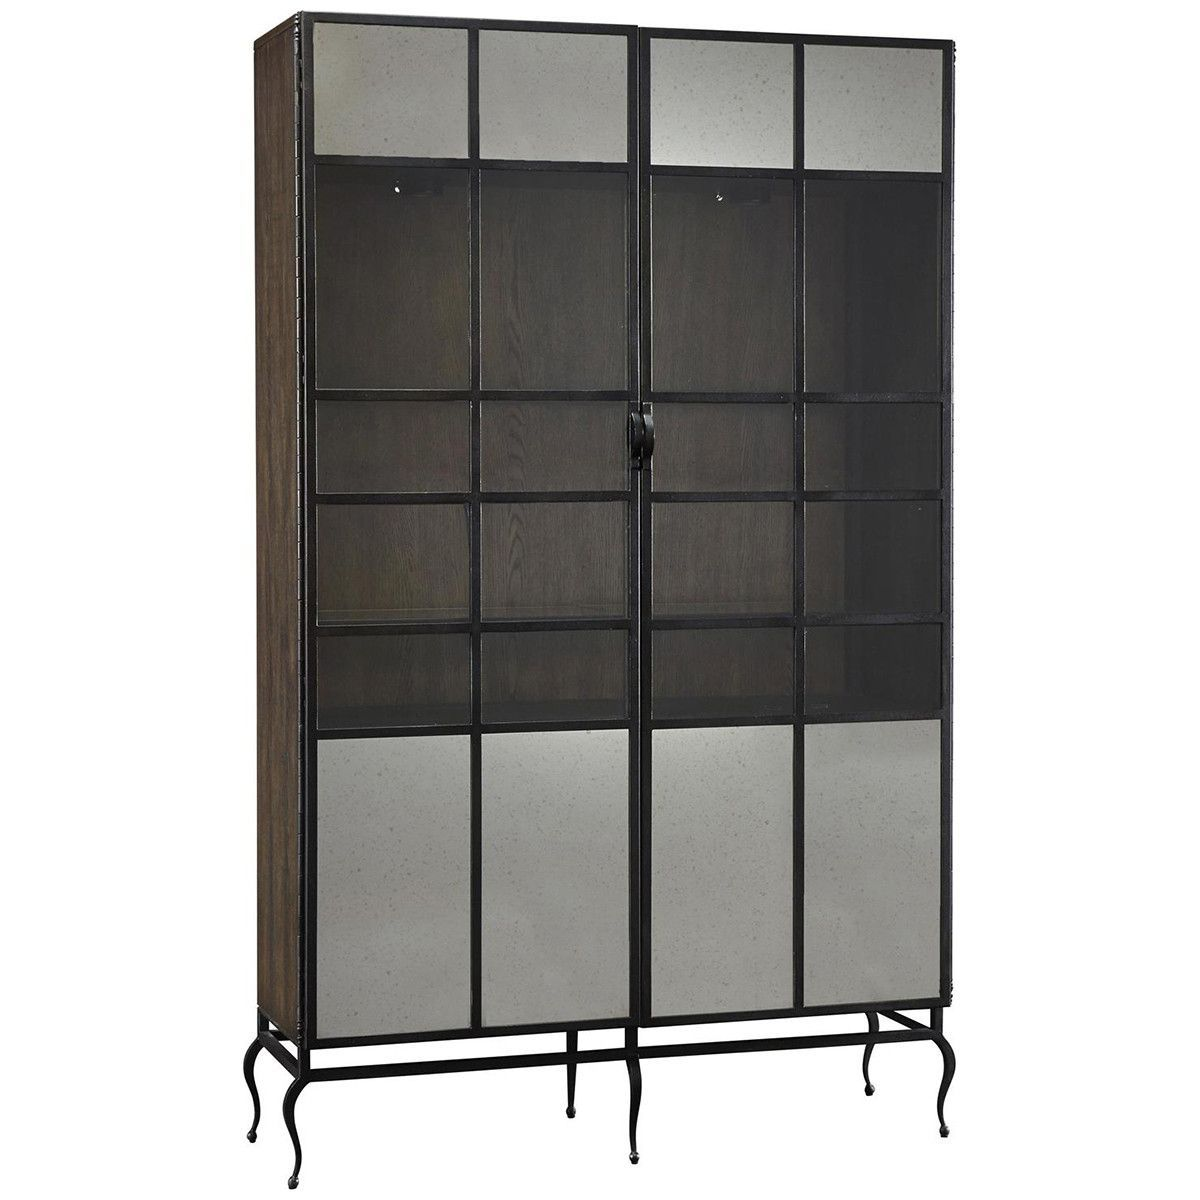 Fine furniture design romy display cabinet products pinterest